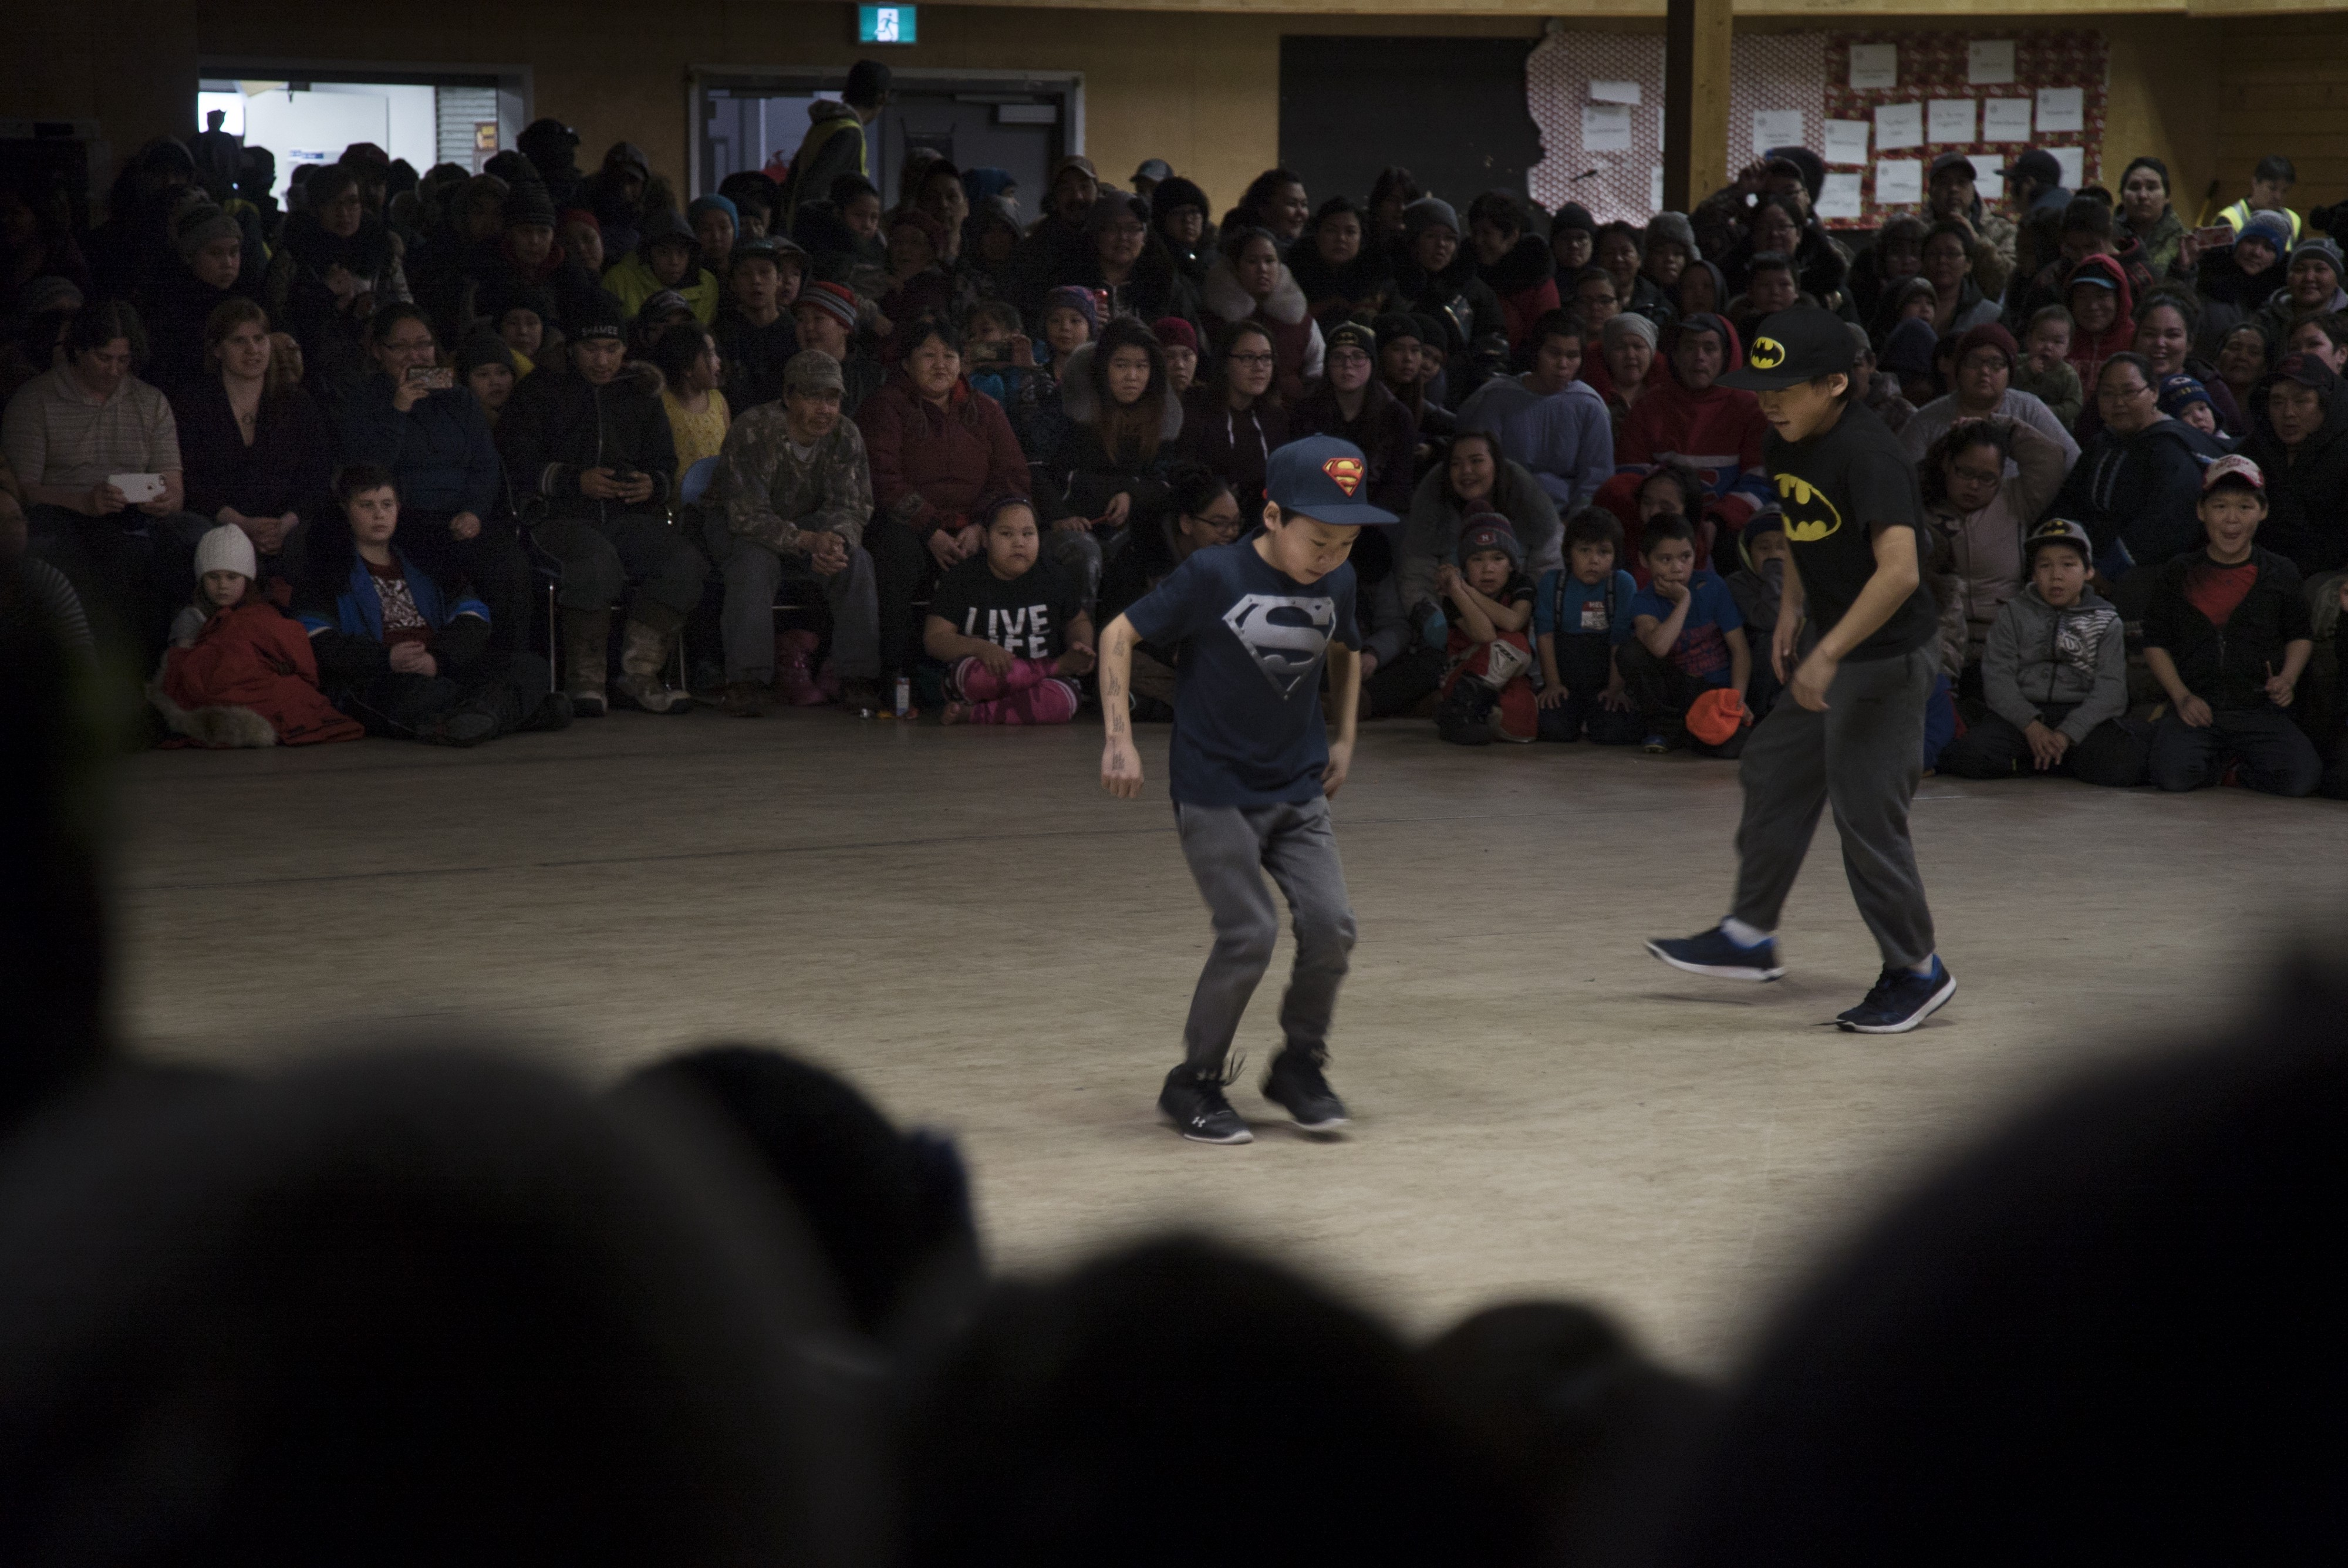 How Nunavut's Inuit teens are dancing to endure a youth